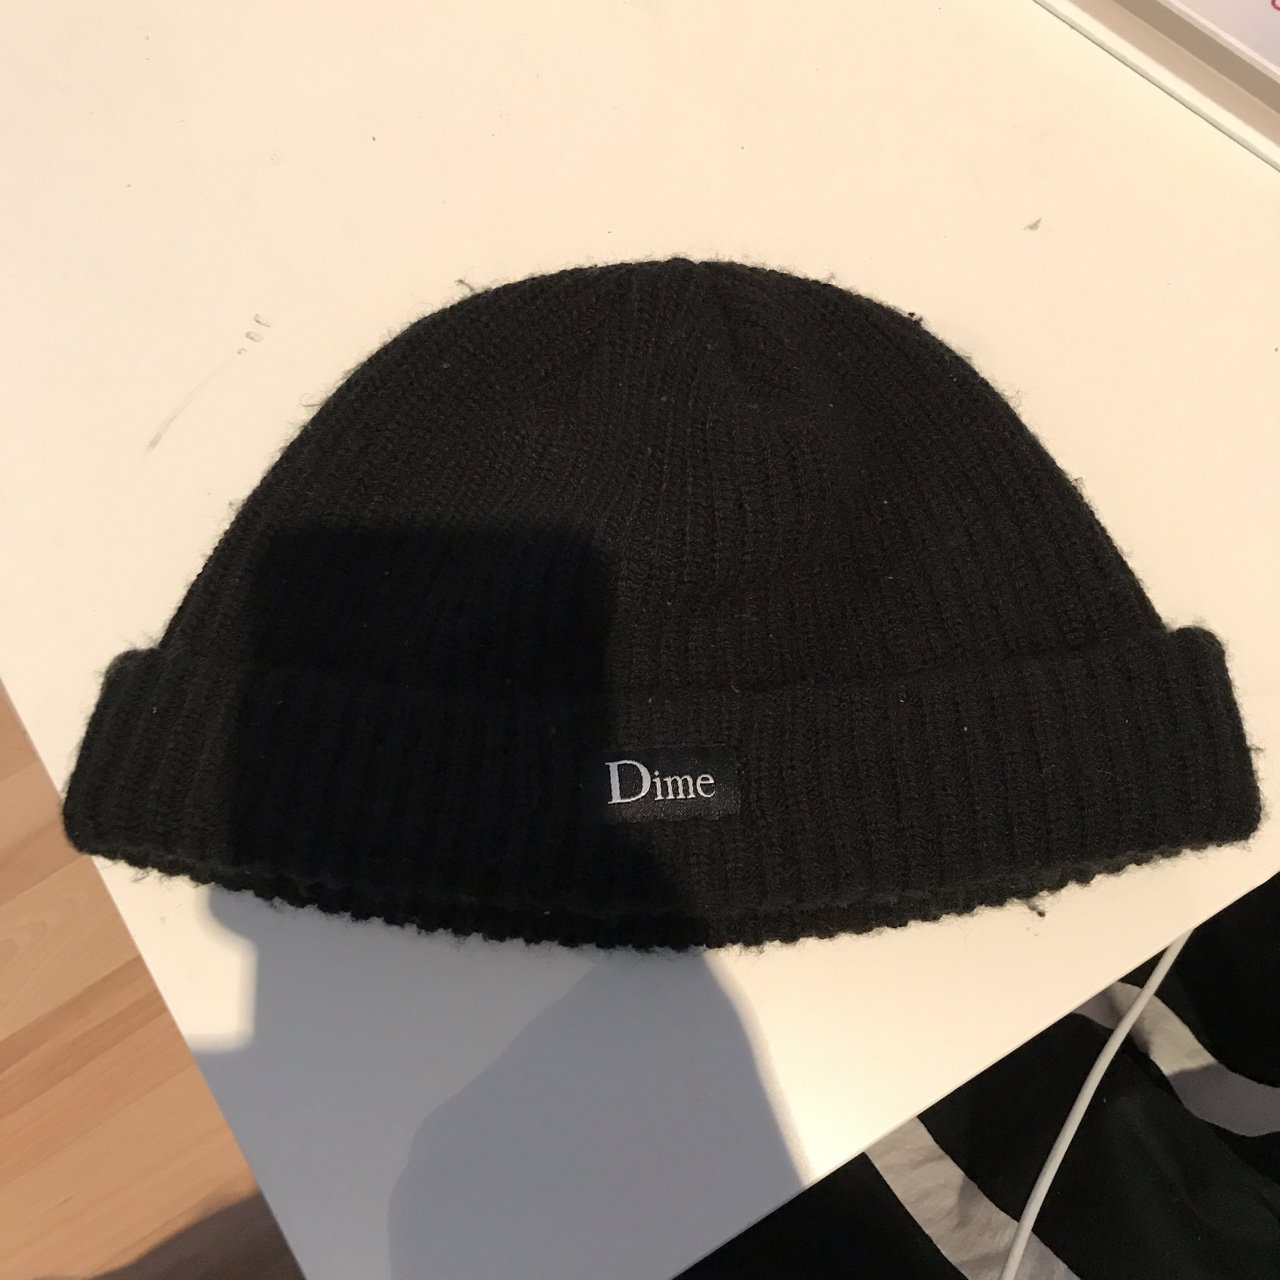 b9f993ca14f dime hat from winter drop 2017 good condition